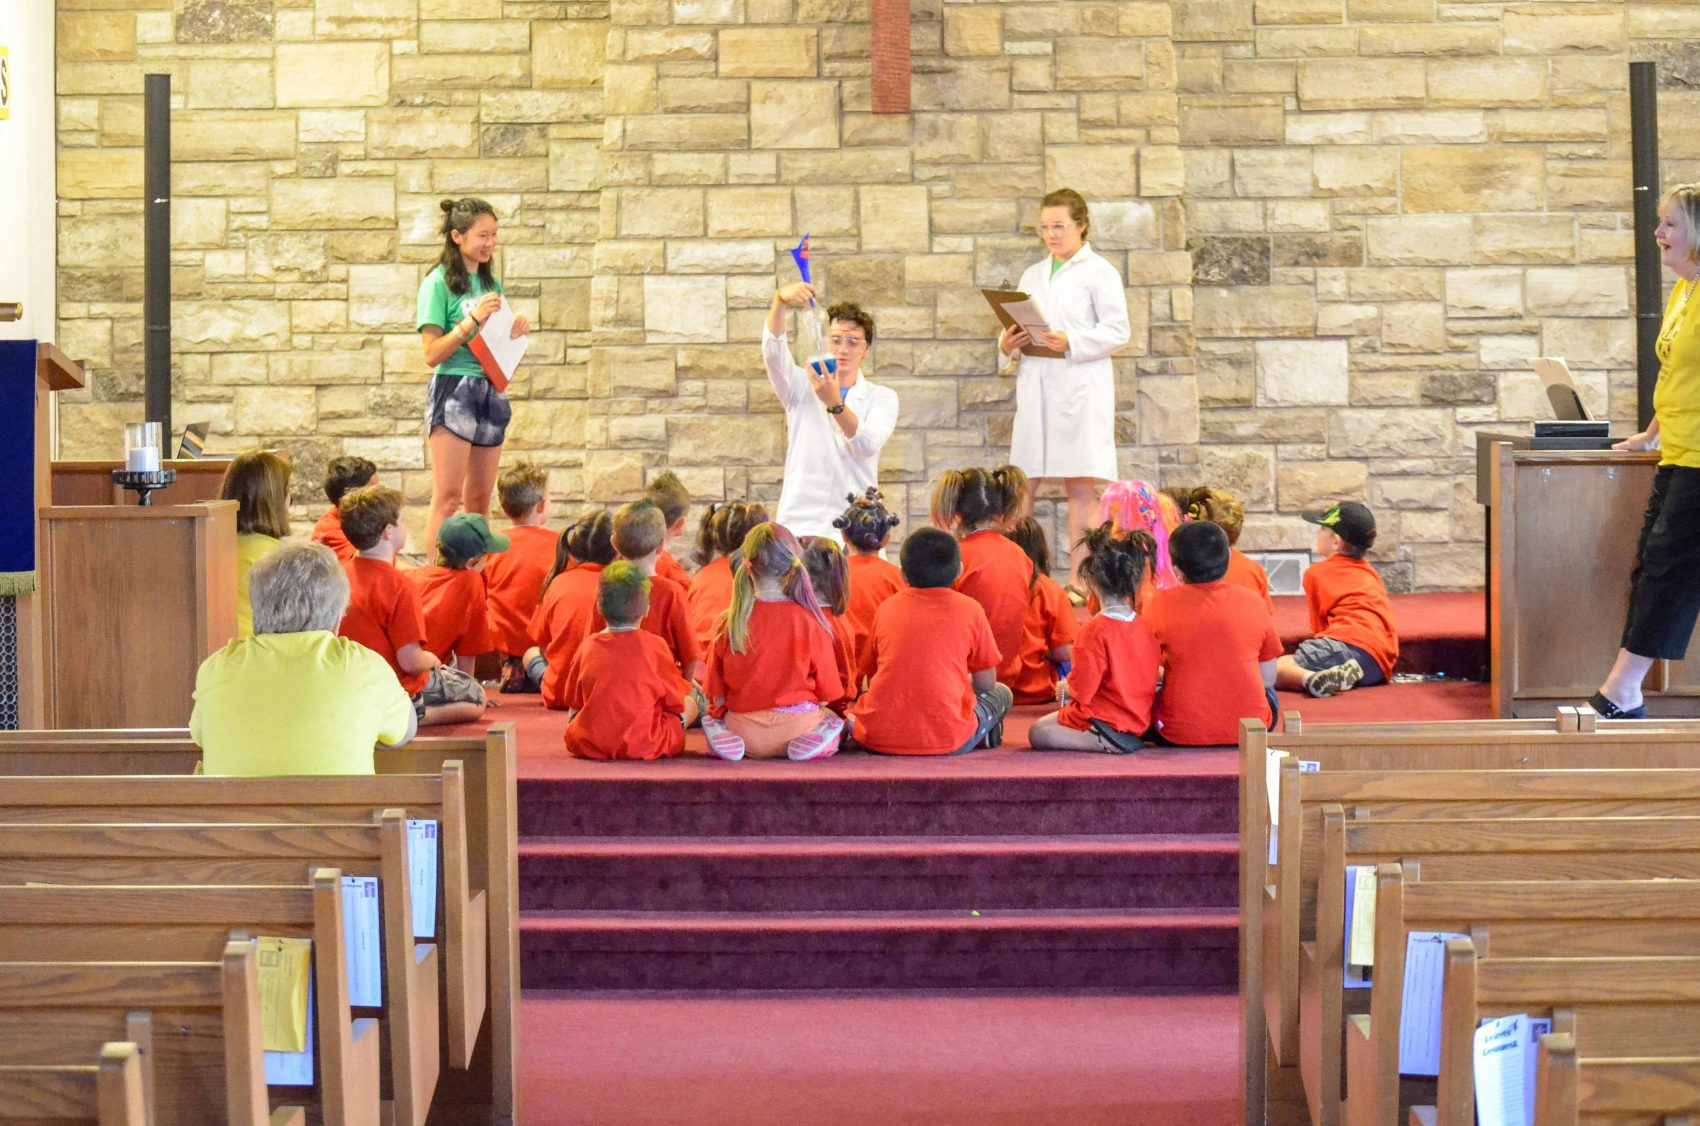 A group of children with bright orange t-shirts sit onstage at a church while three adults stand amongst them acting out a skit.